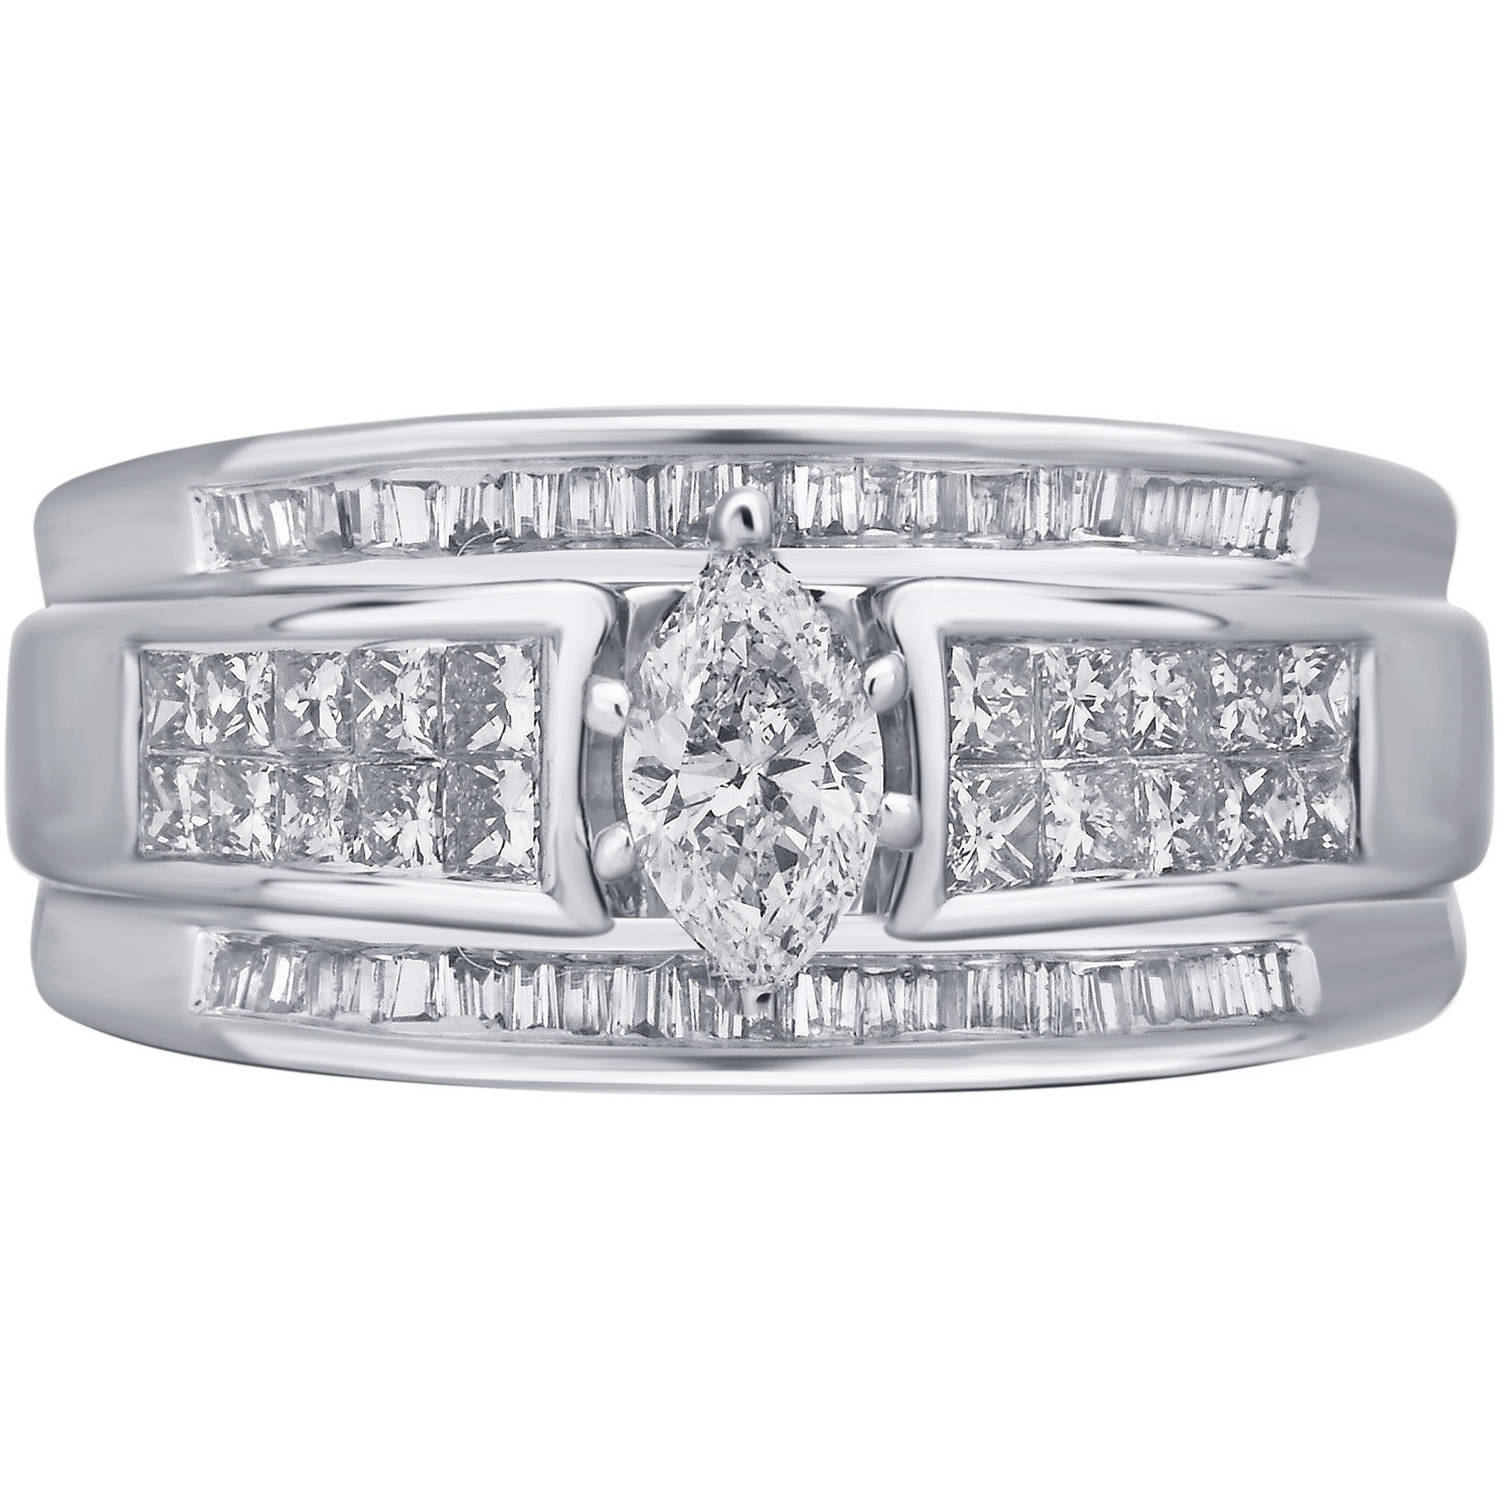 1-Carat T.W. Baguette, Princess and Marquis White Diamond 10-Carat White Gold Engagement Ring by Unique Designs Inc.